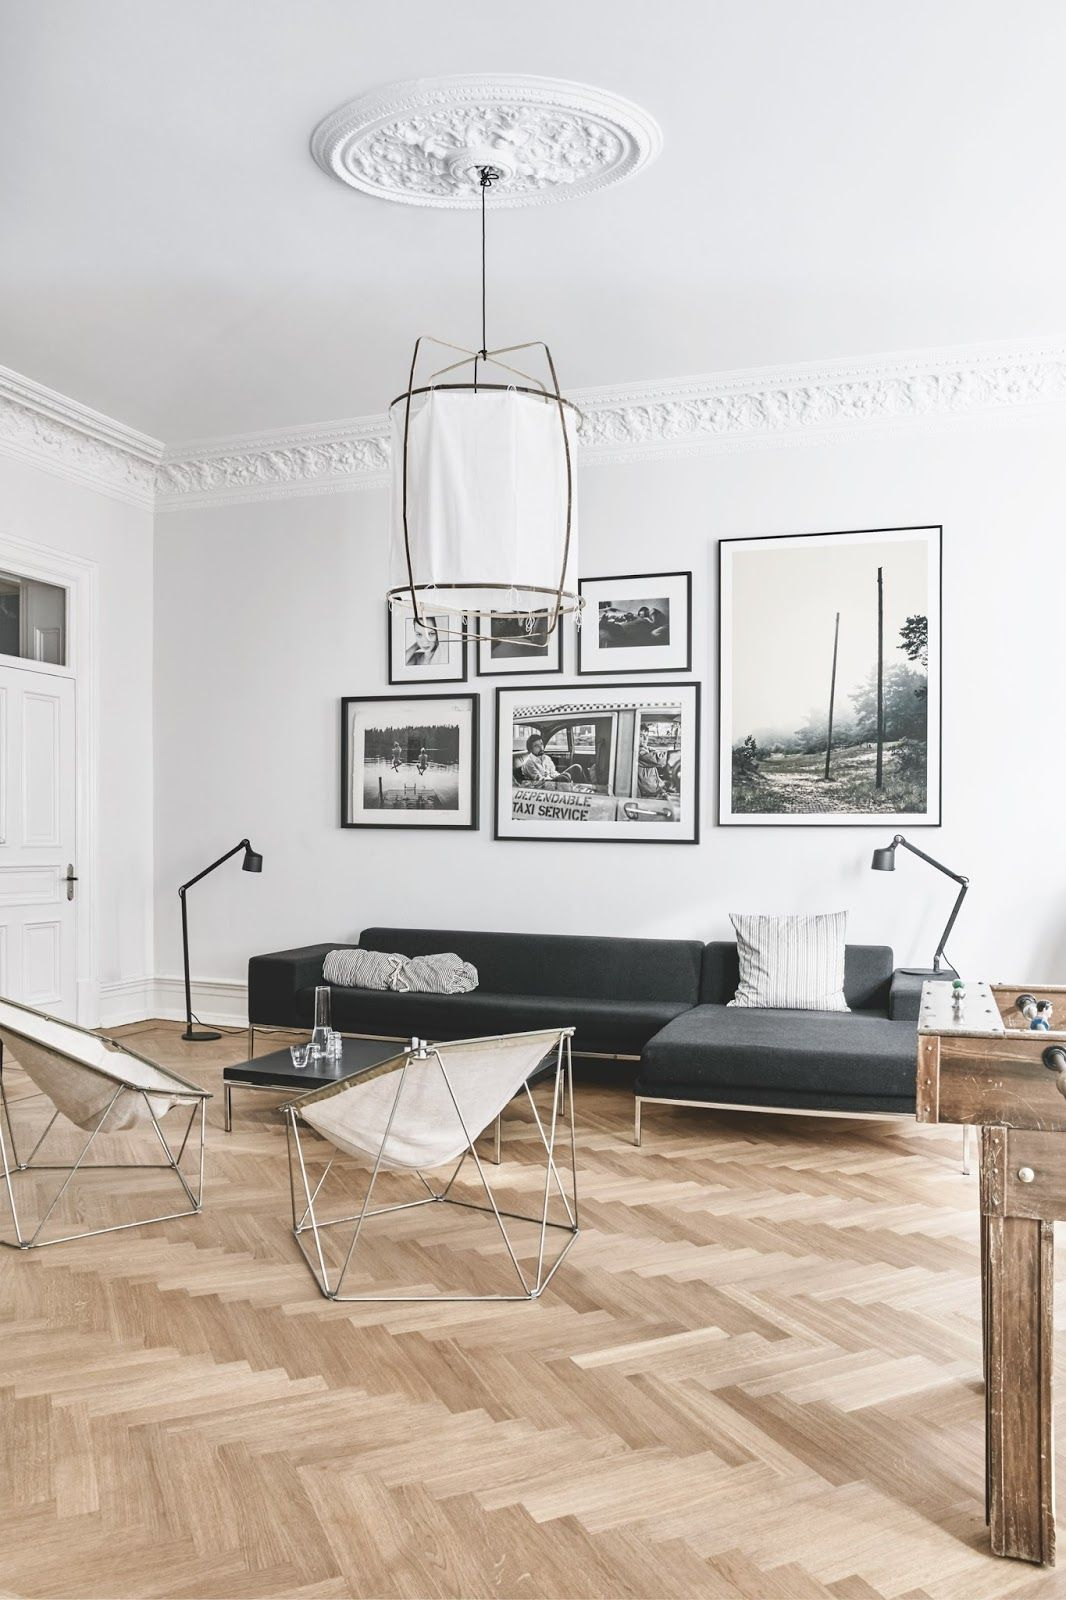 Amazing Scandinavian Apartment With Stuccoes Wooden Floors And Mid Century Modern Furniture Arredamento D Interni Arredamento Casa Arredamento Moderno